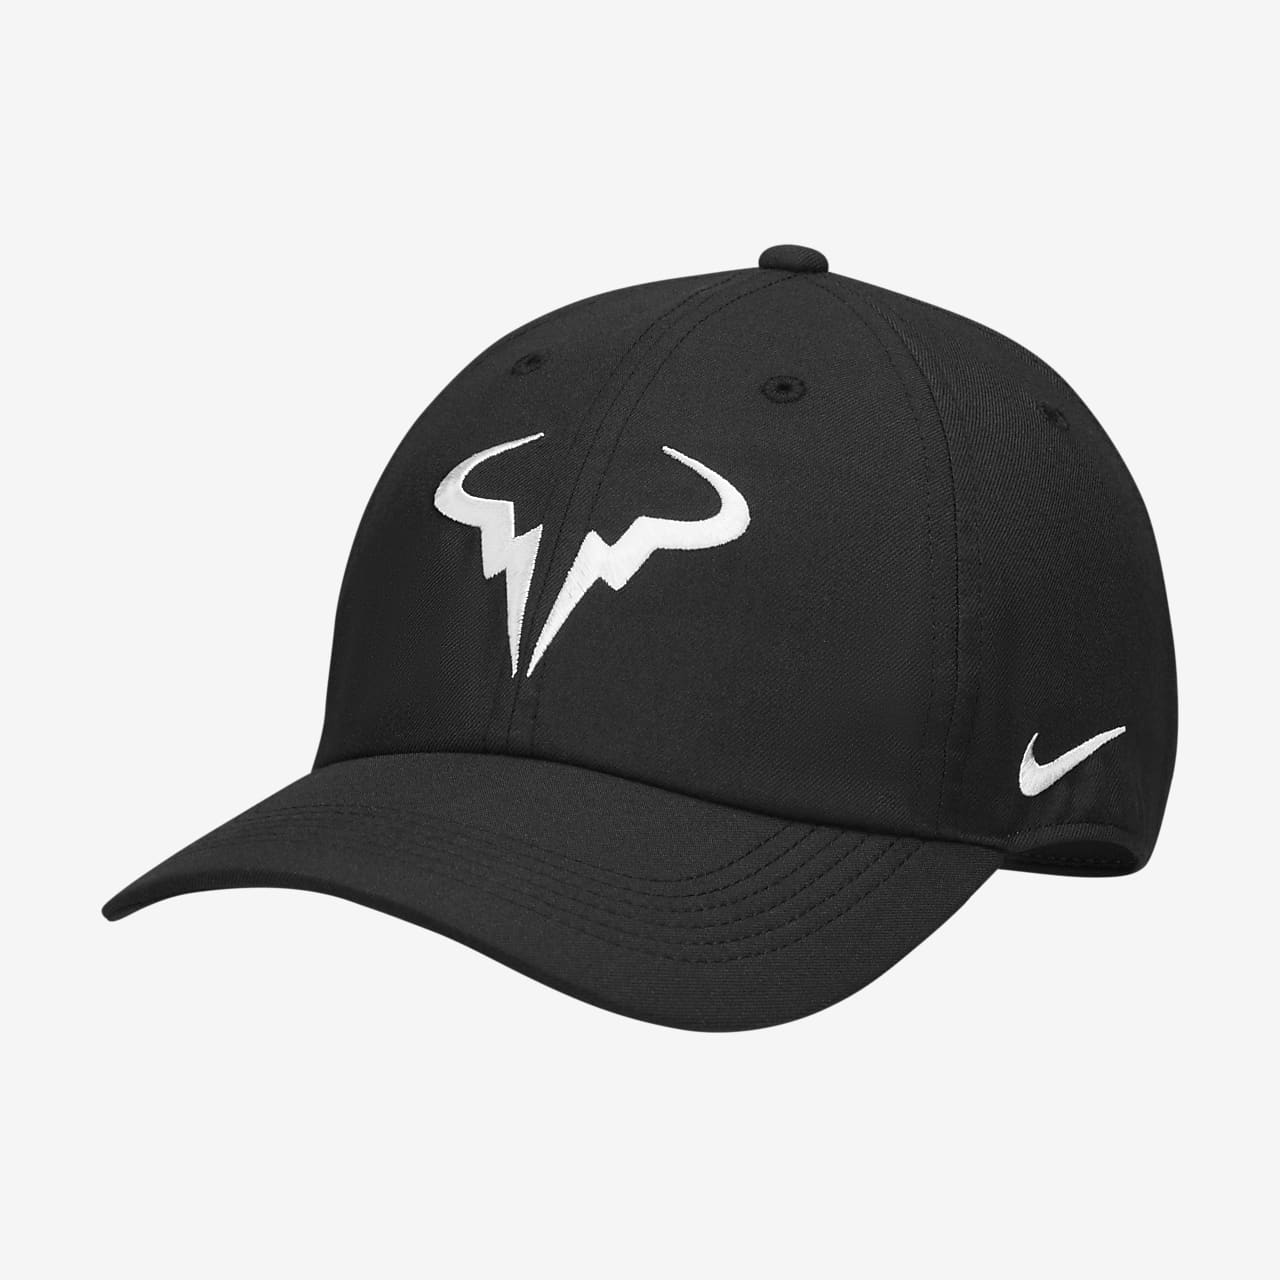 713c49443a27b NikeCourt AeroBill Rafa H86 Adjustable Tennis Hat. Nike.com GB